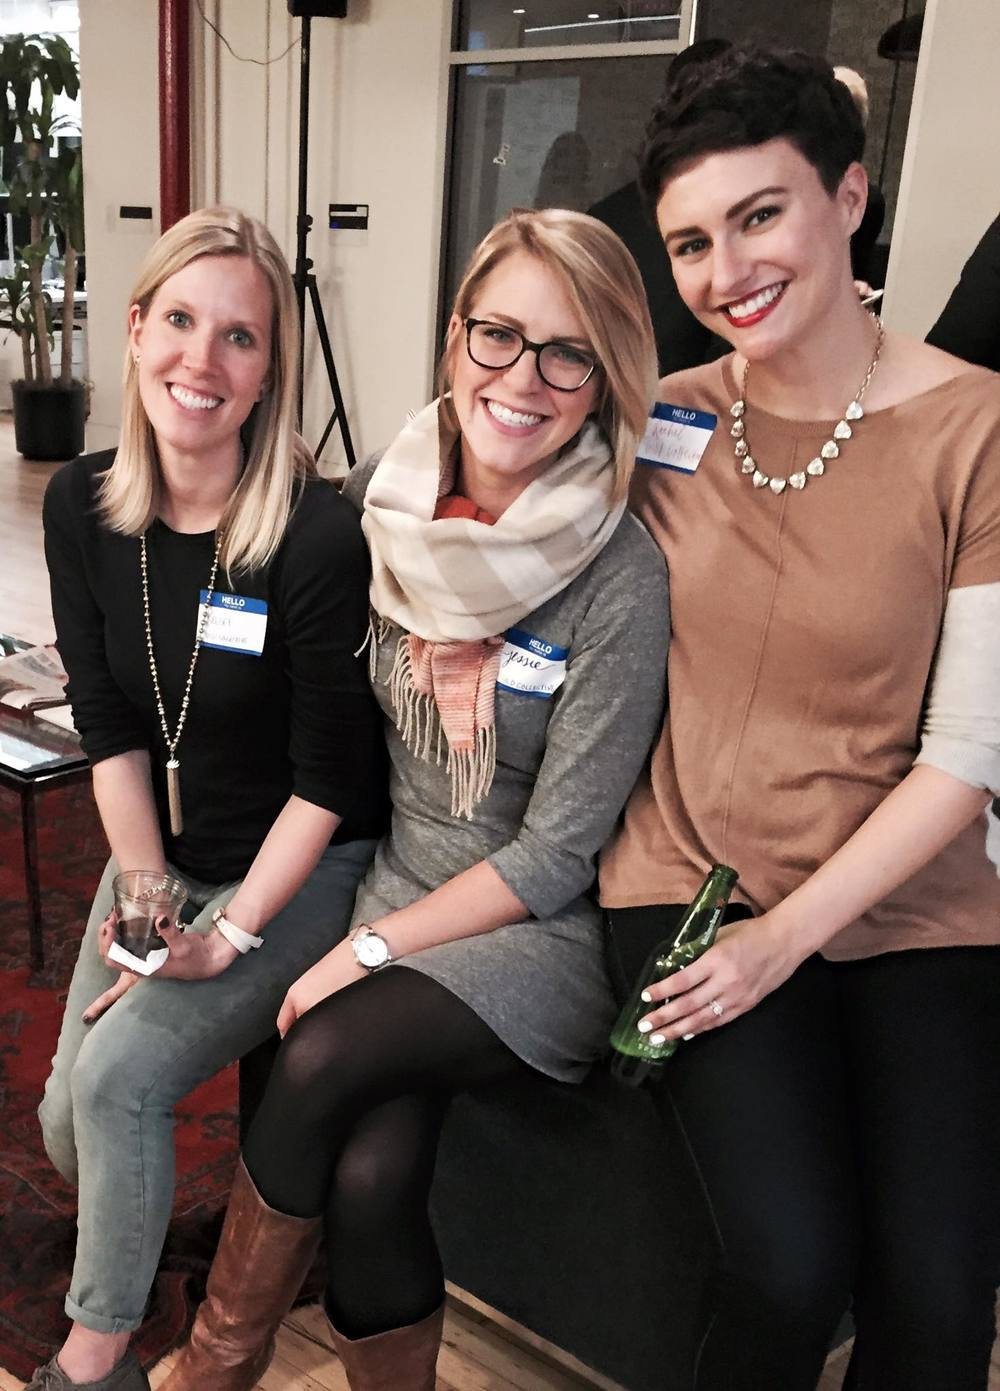 Gild Collective co-founders in New York City. From left: Kelsey Pytlik, Jessie Deye, Rachel Bauer McCreary.